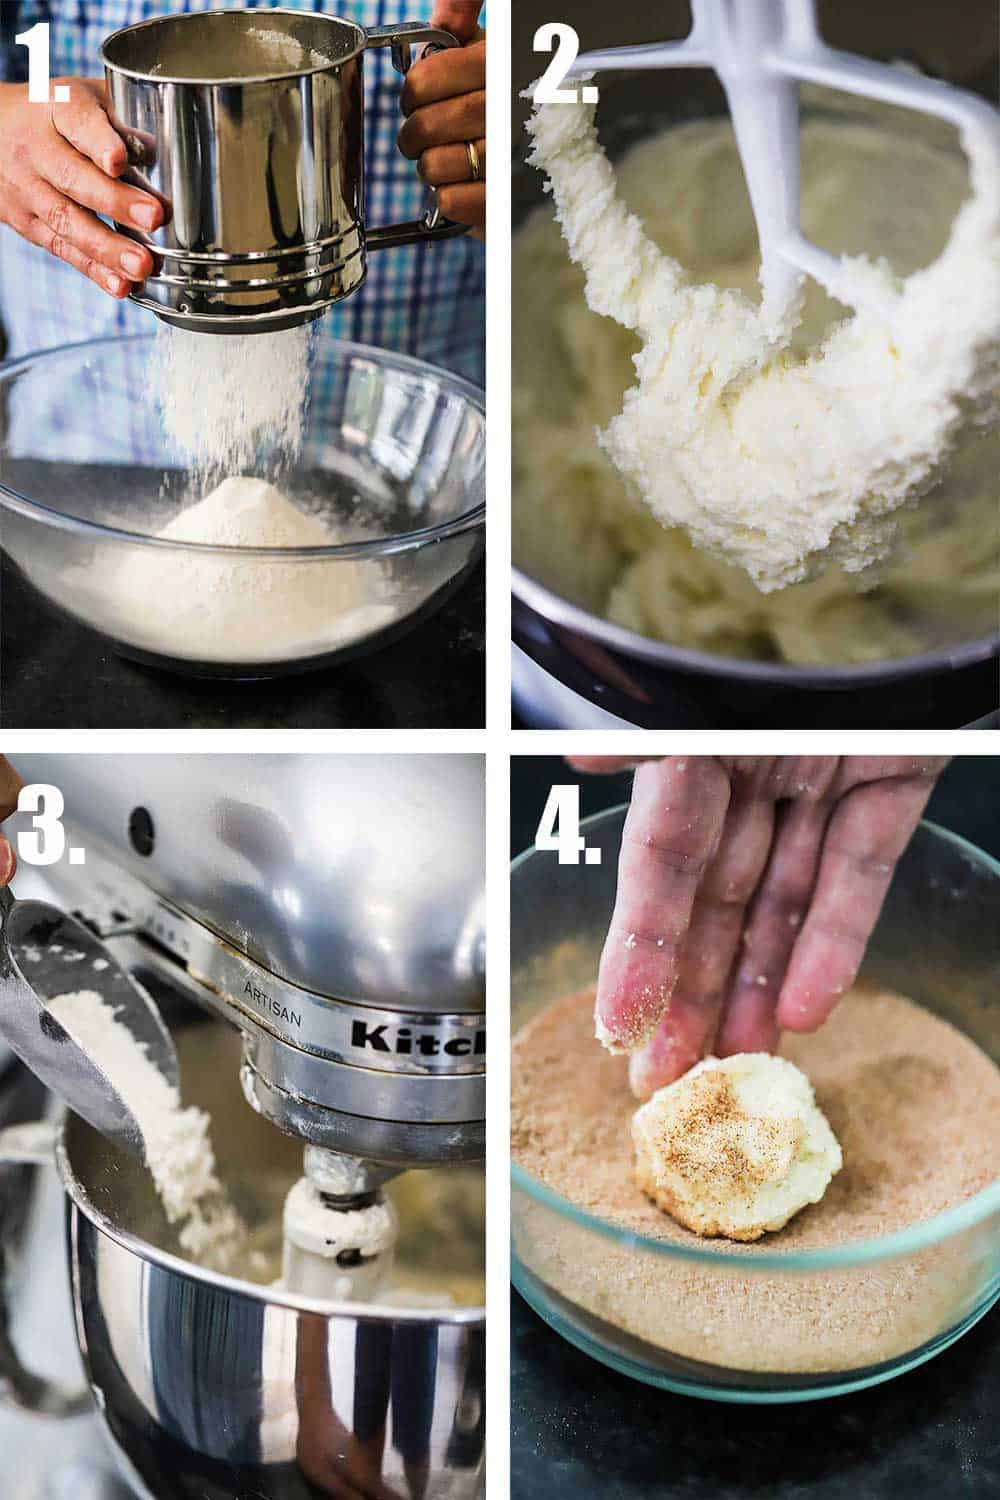 A person sifting flour into a glass bowl, and then cookie dough on a mixer paddle, and the flour being added into the mixer, and then a person rolling a ball of dough in sugar.